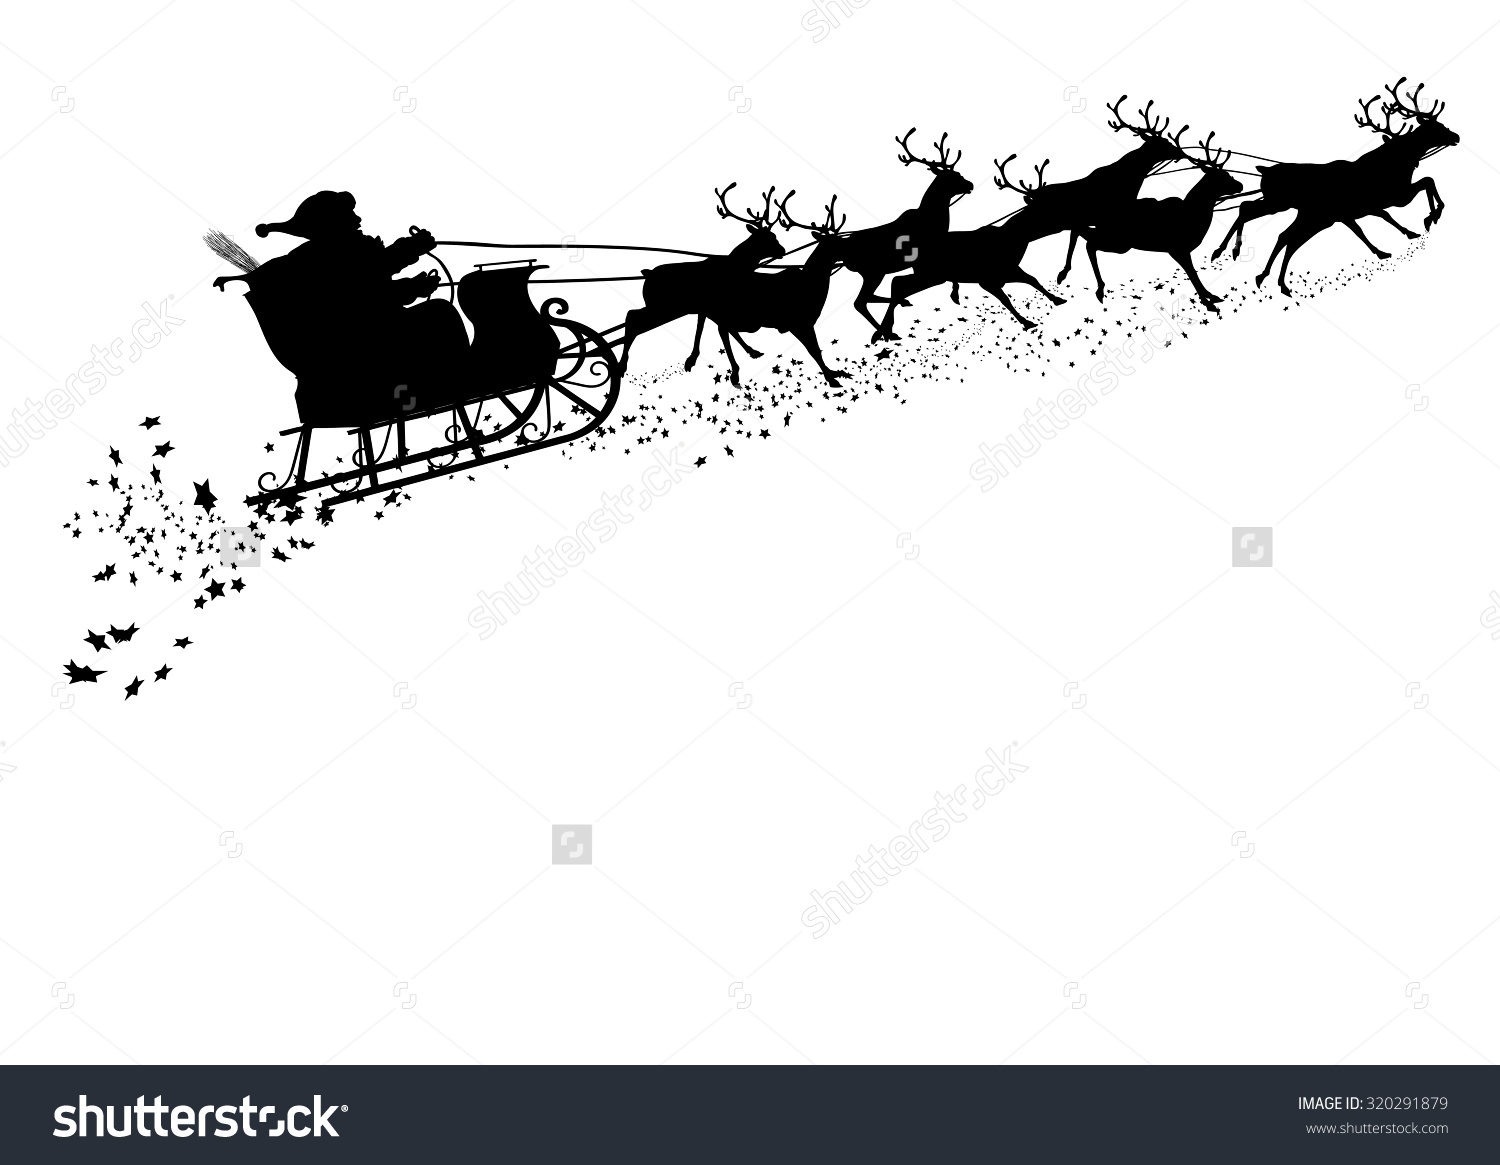 santa and reindeer silhouette clipart #15